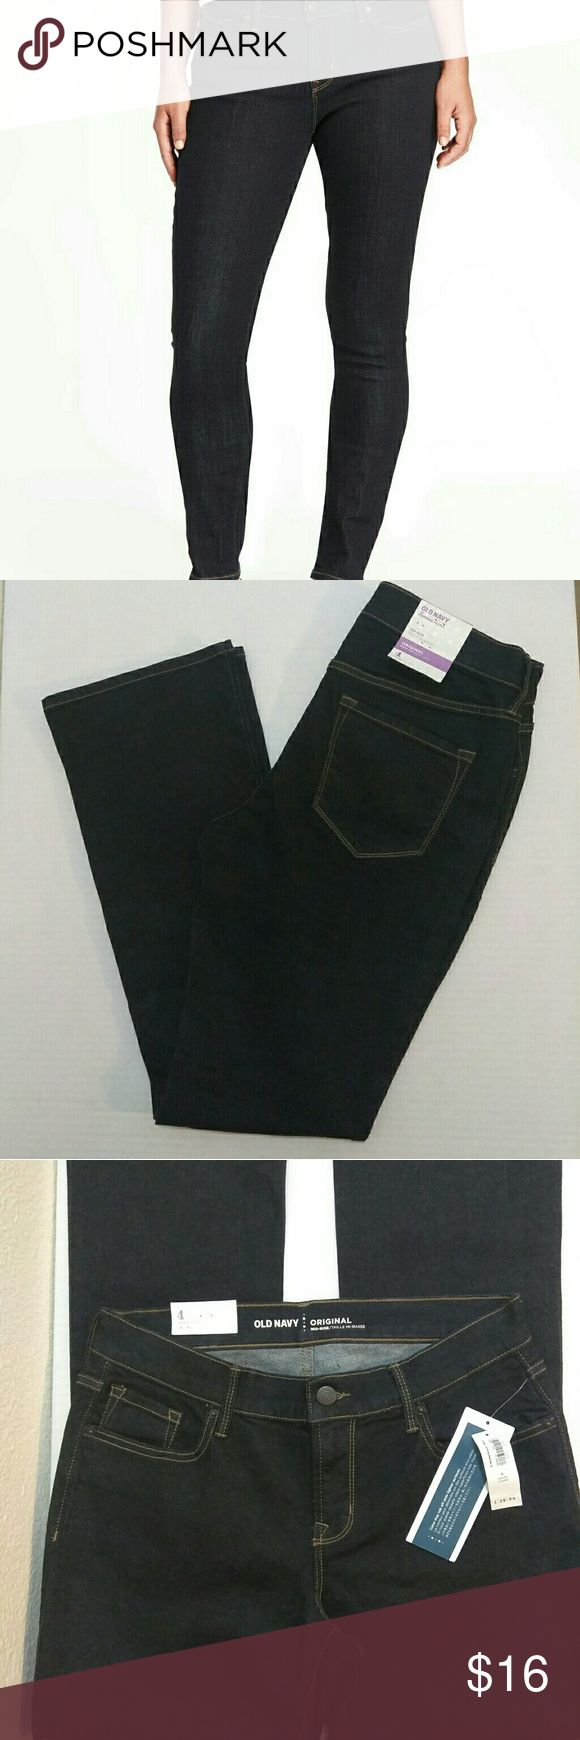 Old Navy Curvy Skinny Jeans Original Boot Cut Old  Navy Dark Rinse Mid Rise Curvy Skinny Jeans For Women...Waist:30 inches...Inseam:29.5 inches...Rise:9 inches...Hip:36 inches Old Navy Jeans Boot Cut